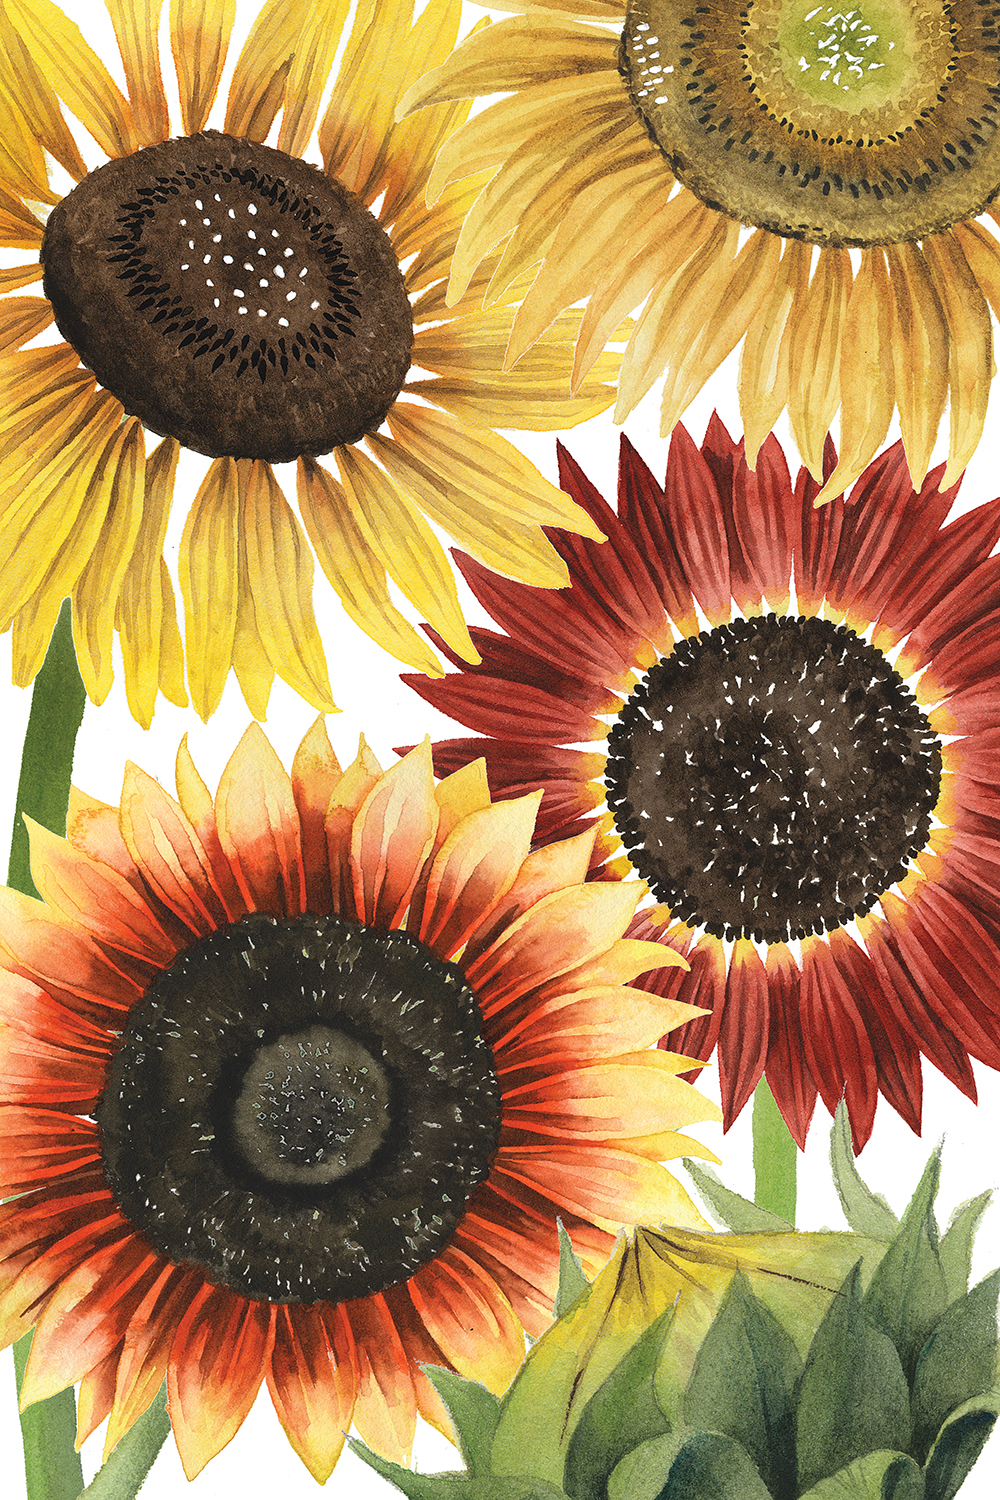 Four large sunflowers with yellow and red autumn colors